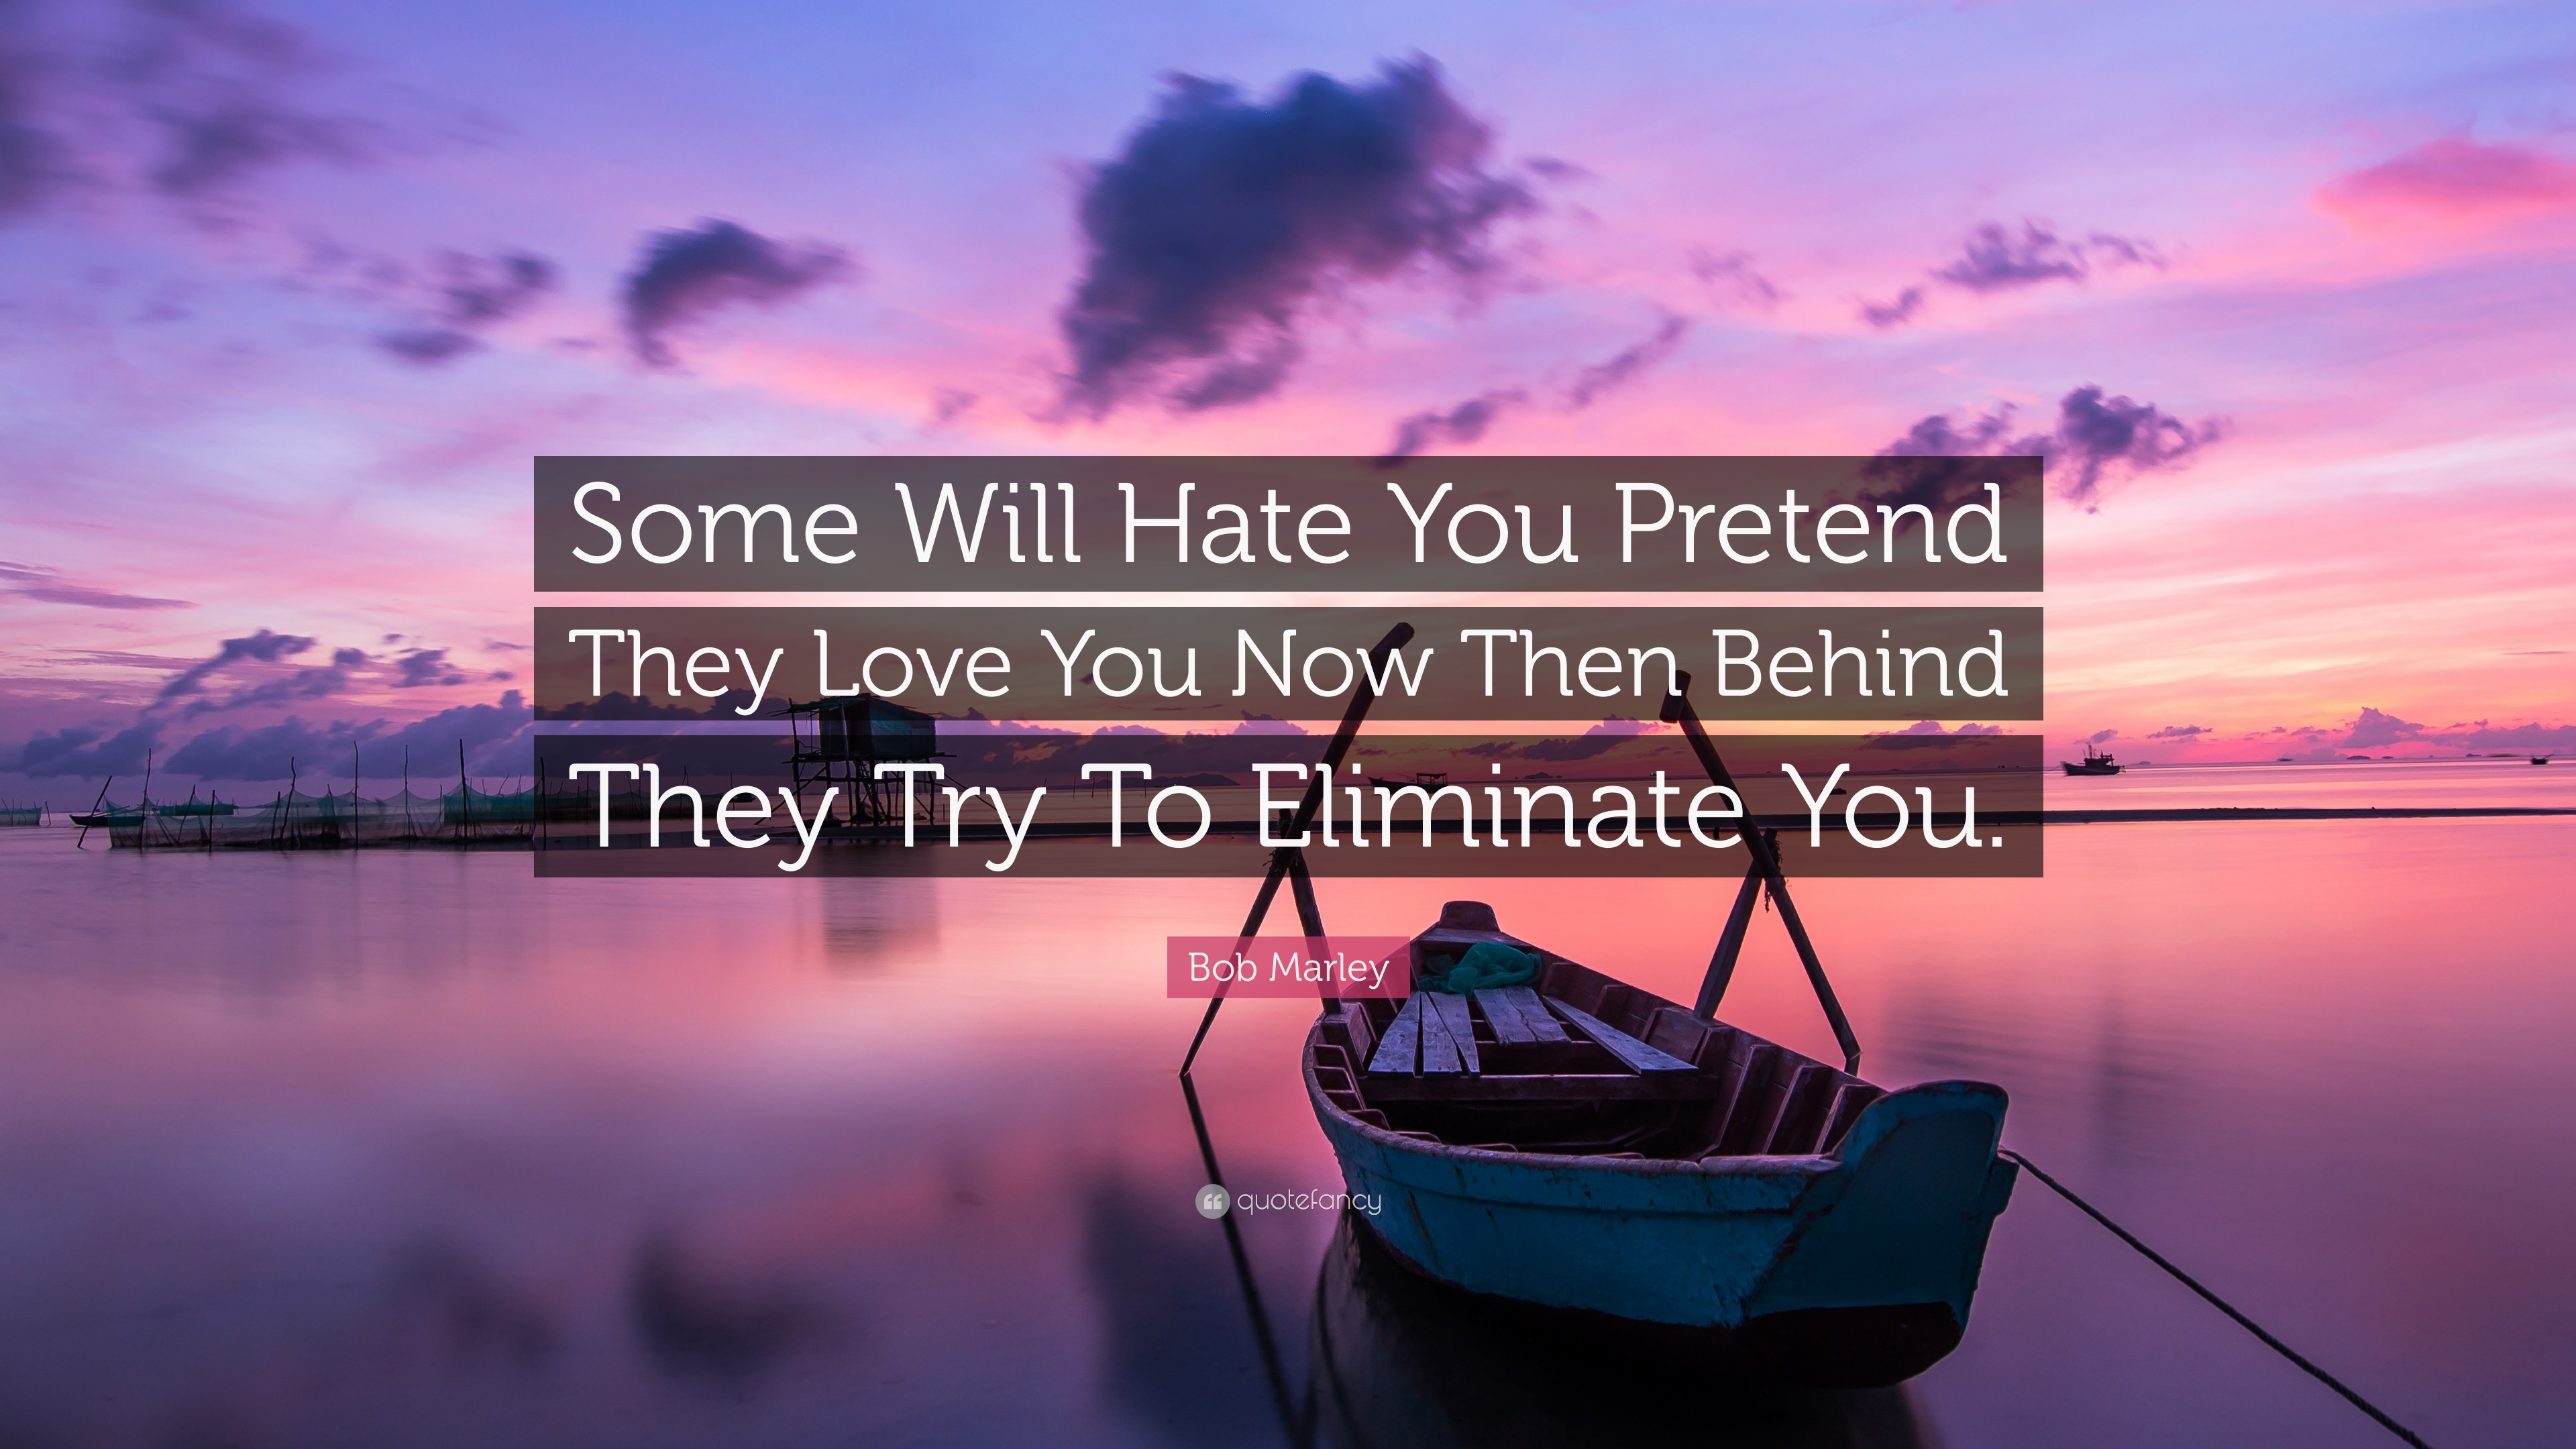 Now I Hate You Quote: Bob Marley Quotes (100 Wallpapers)